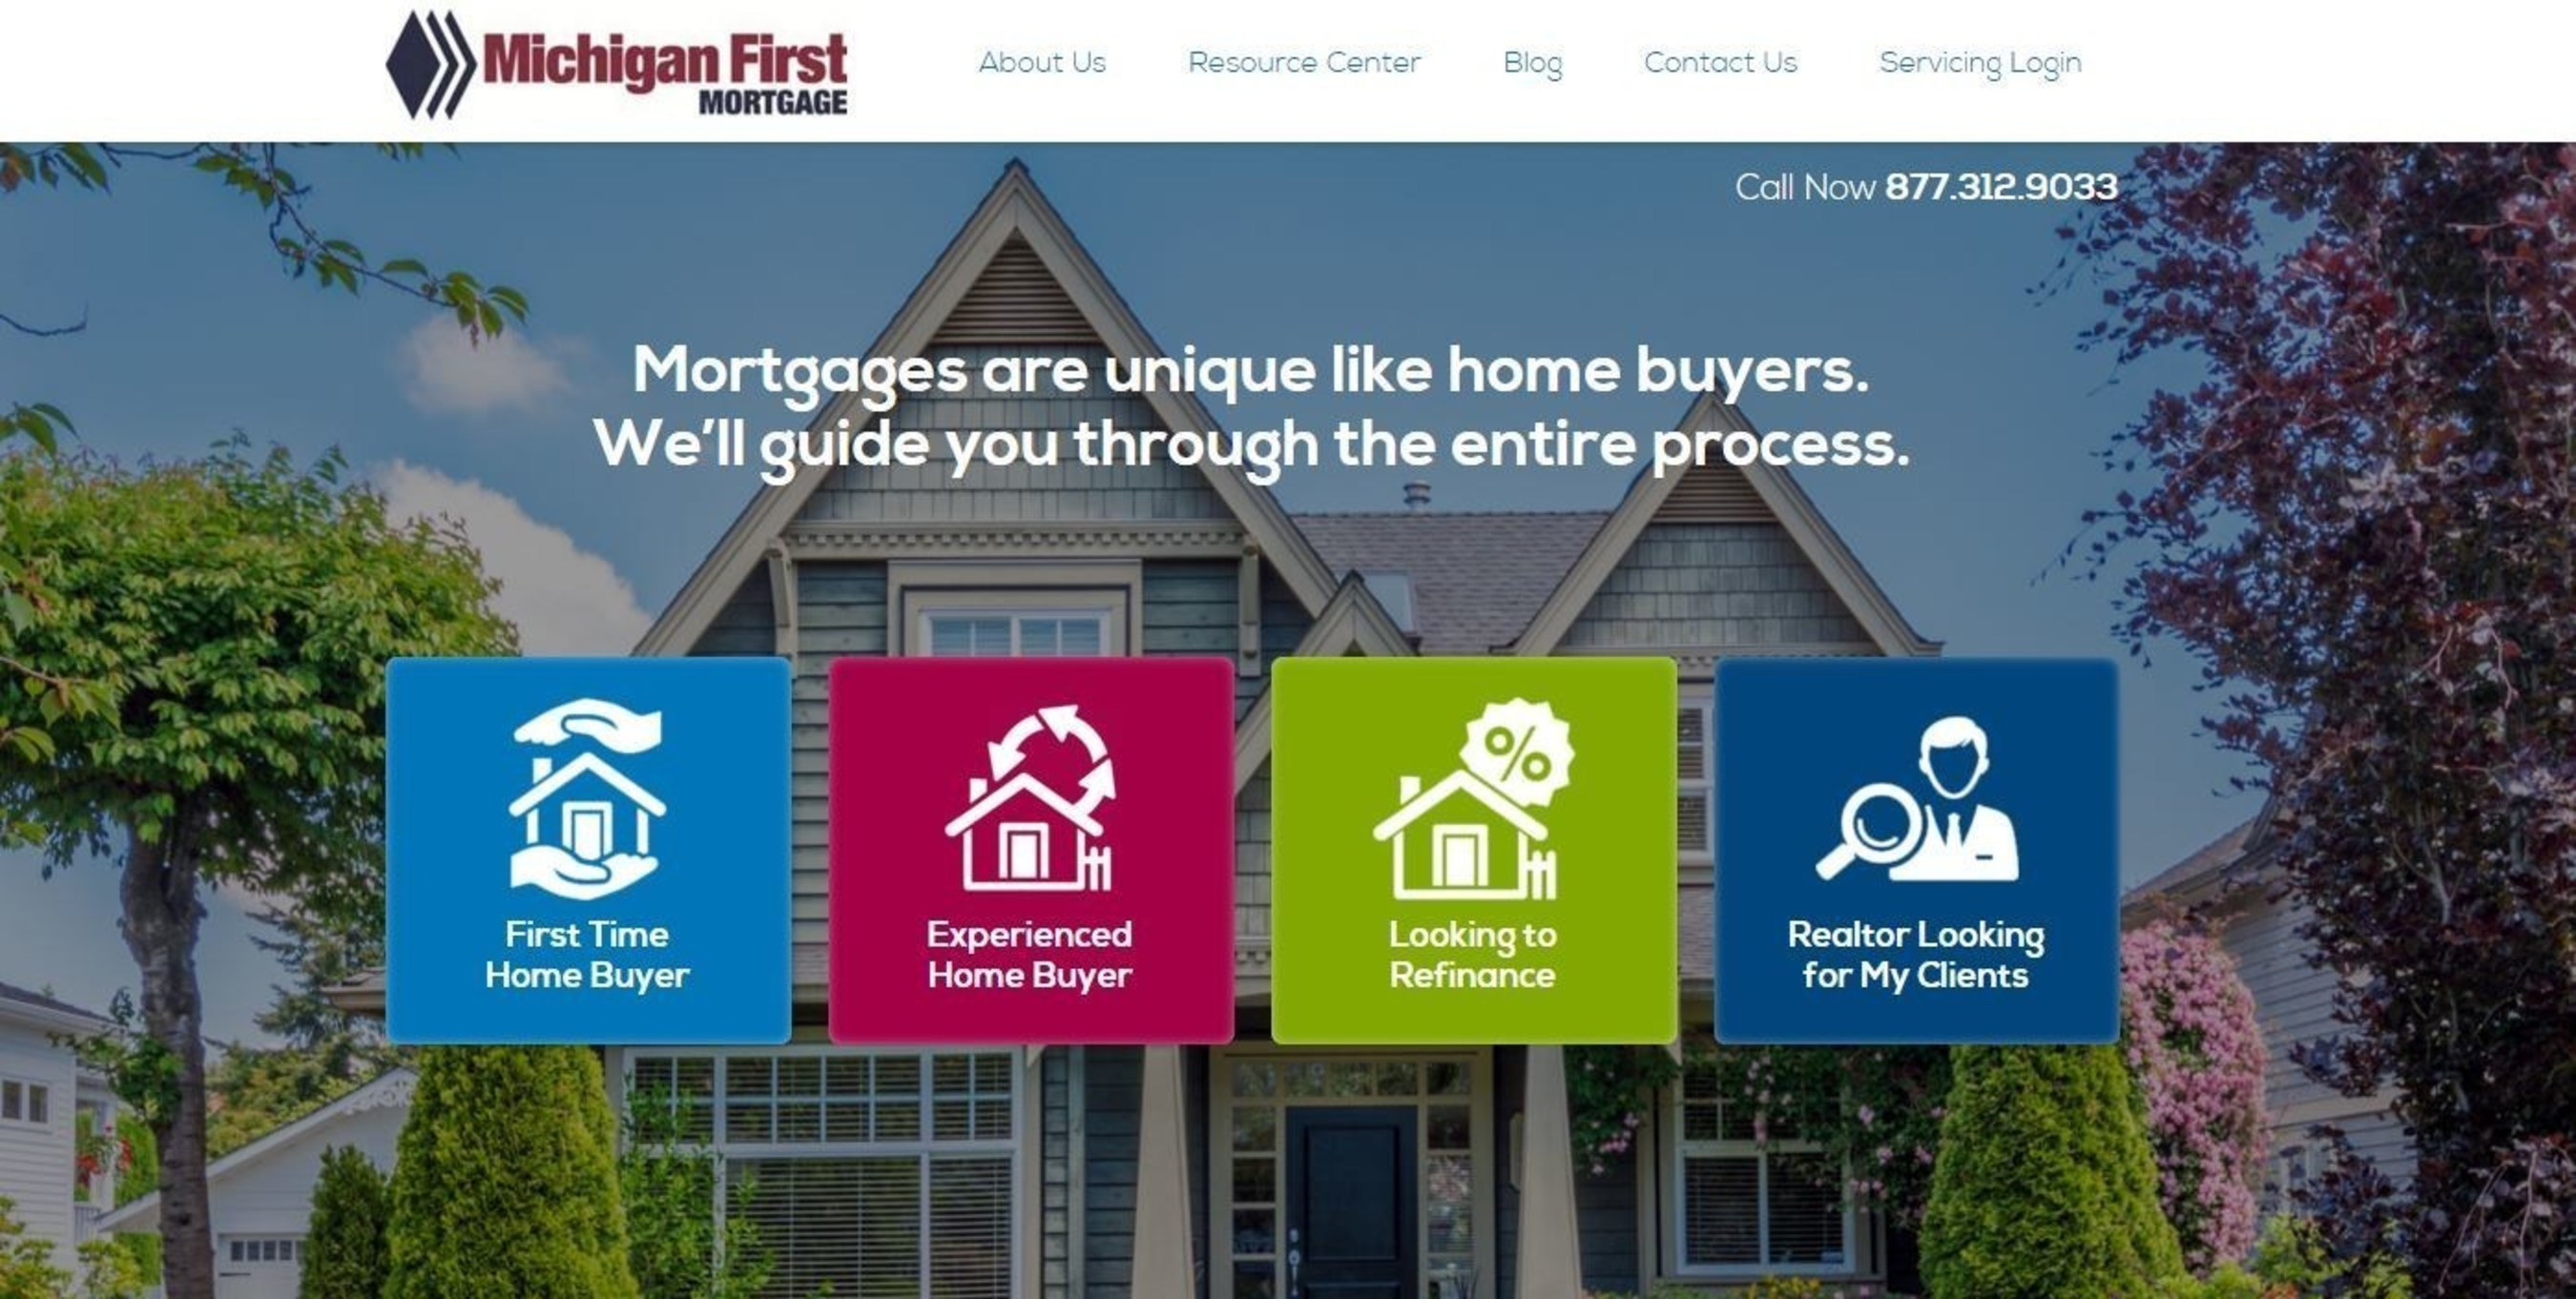 Michigan First Credit Union Launches New Mortgage Website